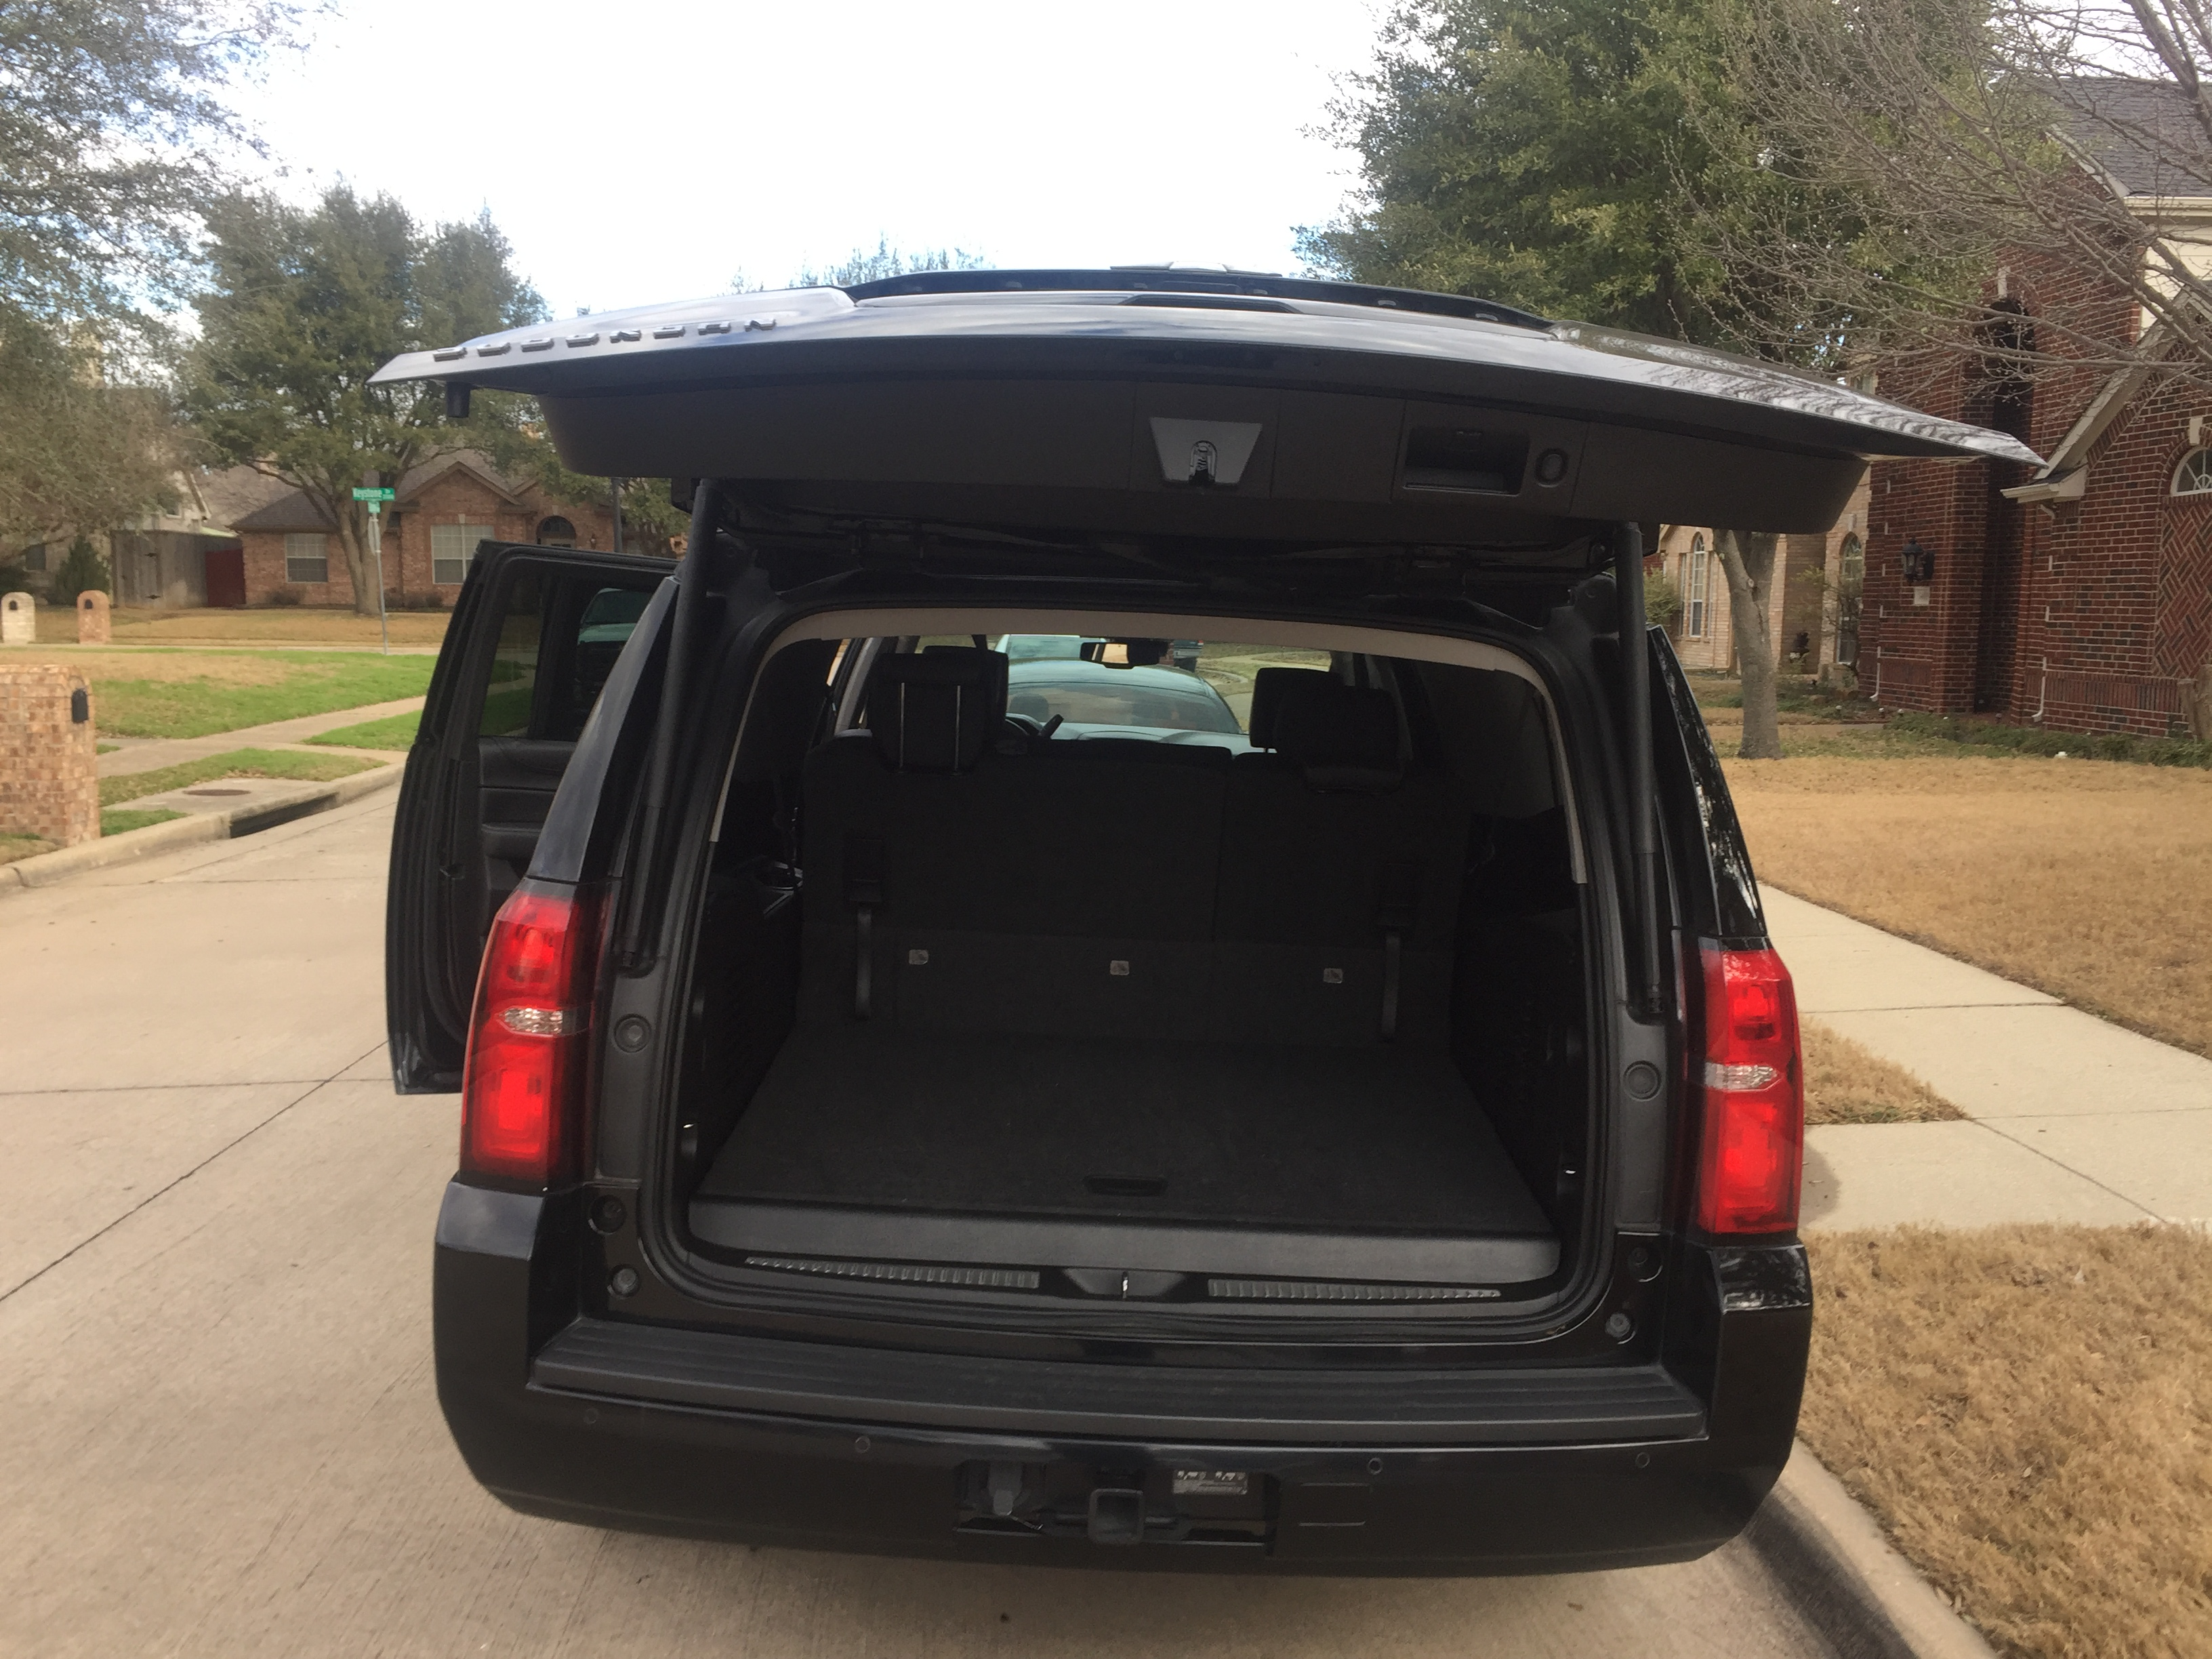 Car Service To Dfw: SUV Chauffeur Driven,Dallas,Fort Worth,Texas,Fairview